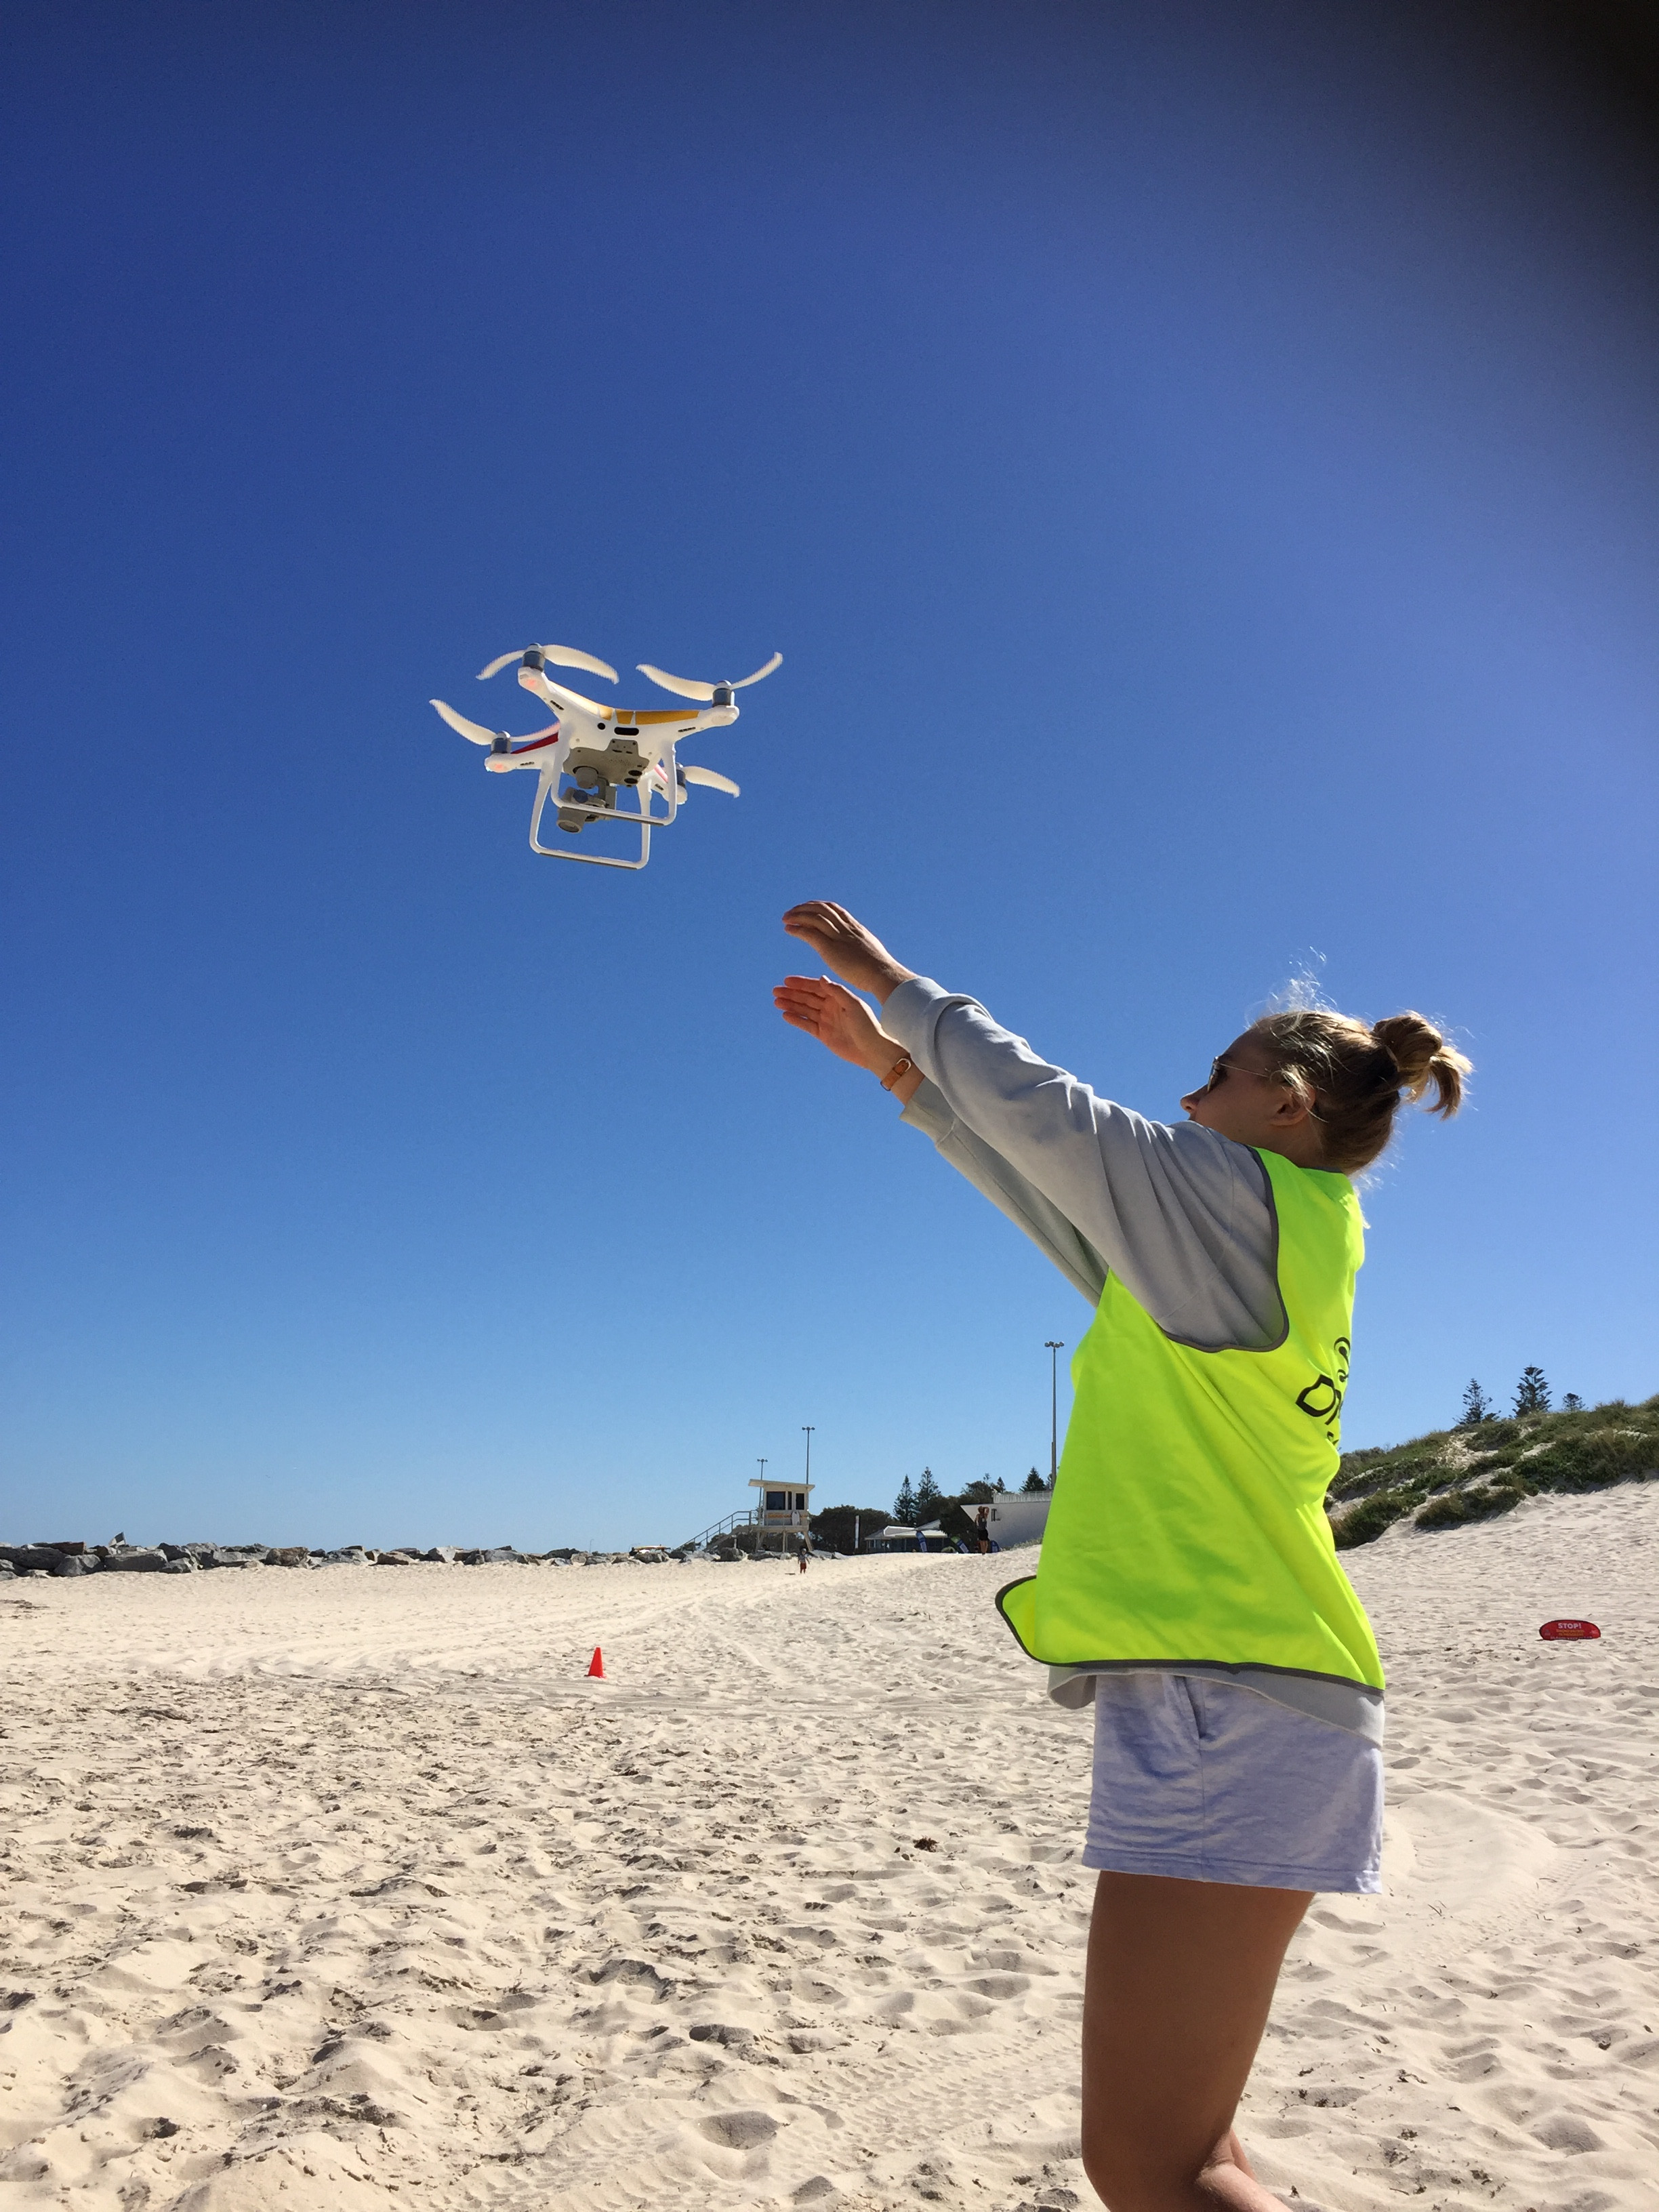 Drone Patrol Practical Session